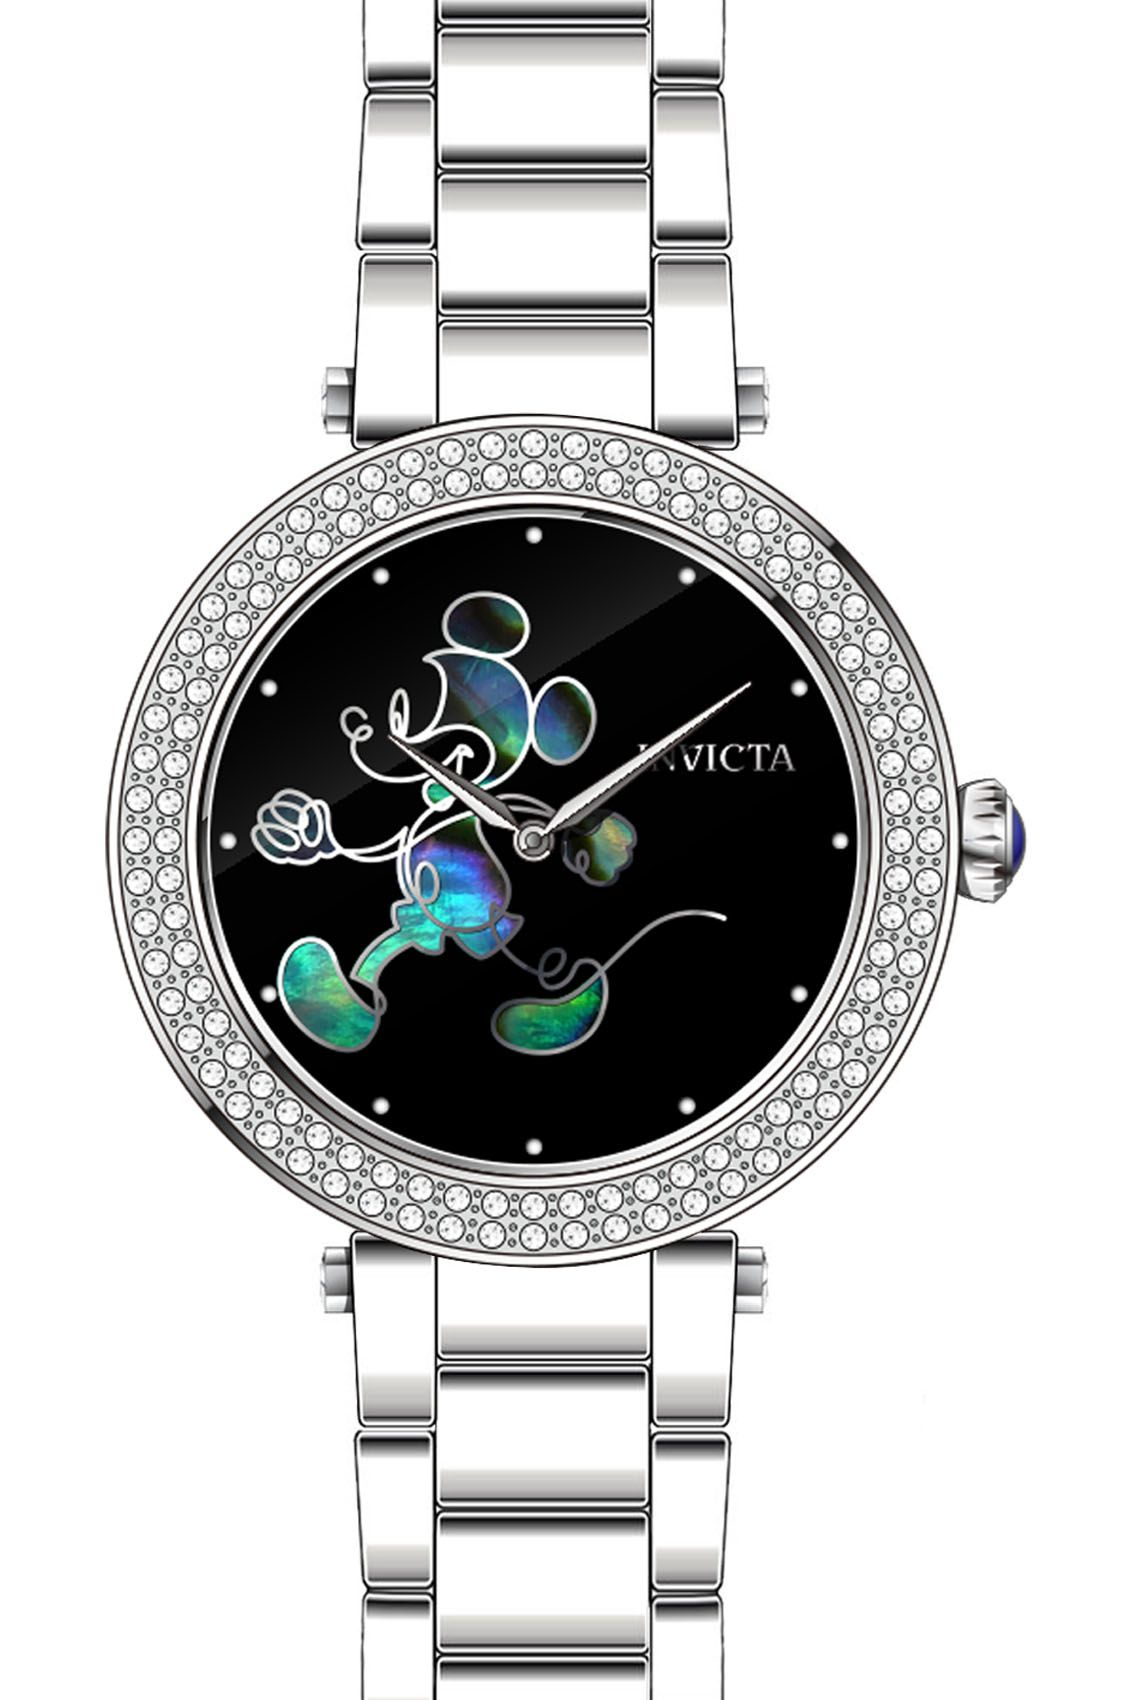 8af33824b86 Invicta Disney Limited Edition Mickey Mouse Women's Quartz 38mm Stainless  Steel Case Black Dial - Model 23780